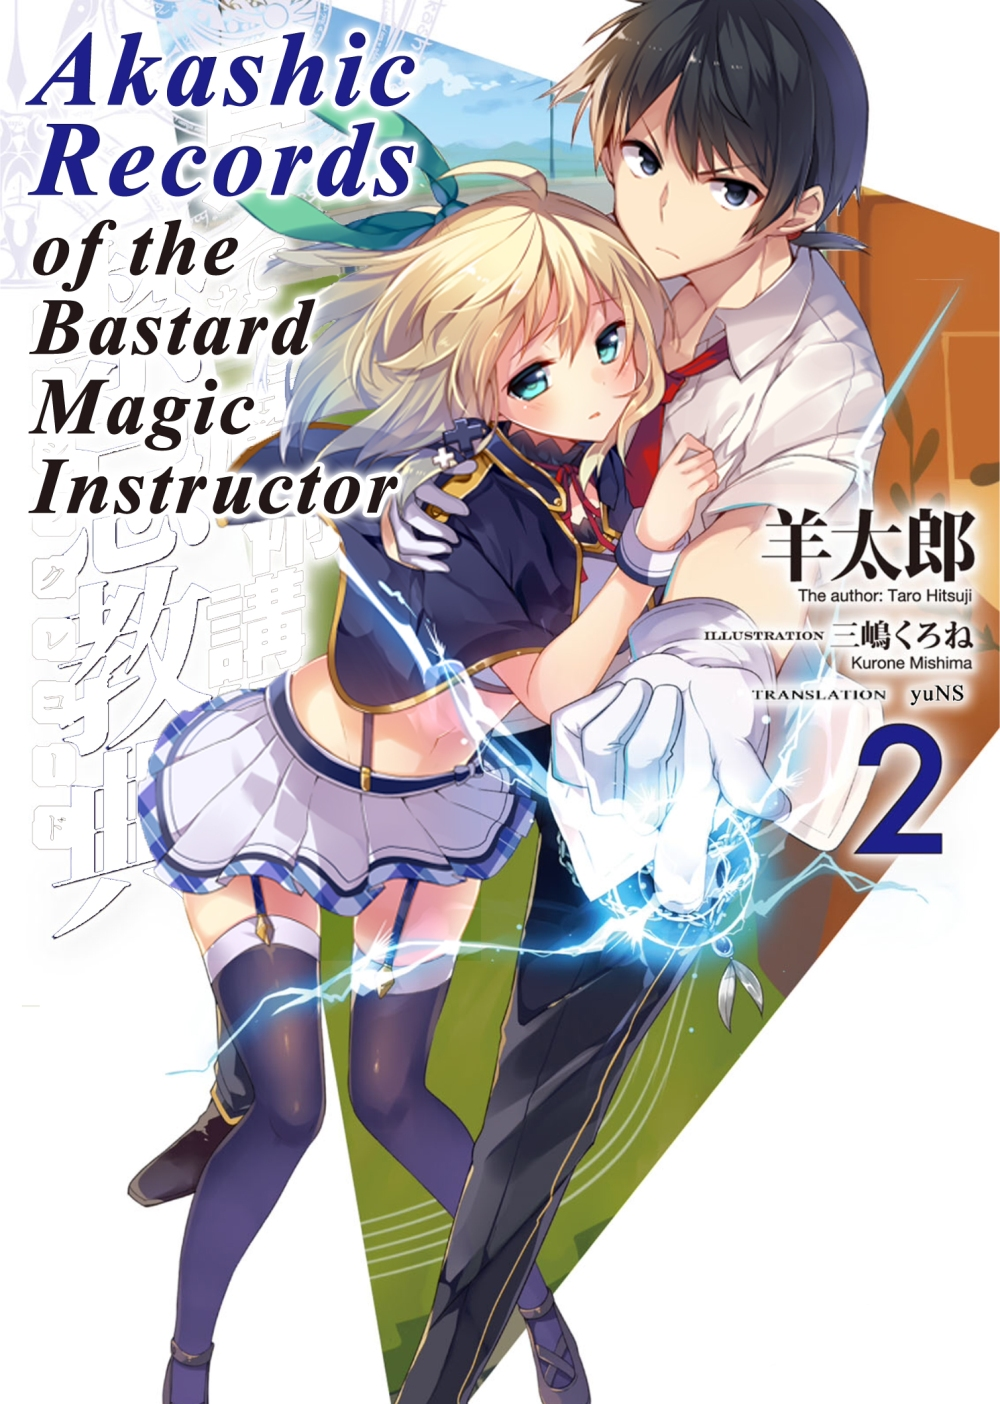 Akashic Records Vol 2 Cover.jpg